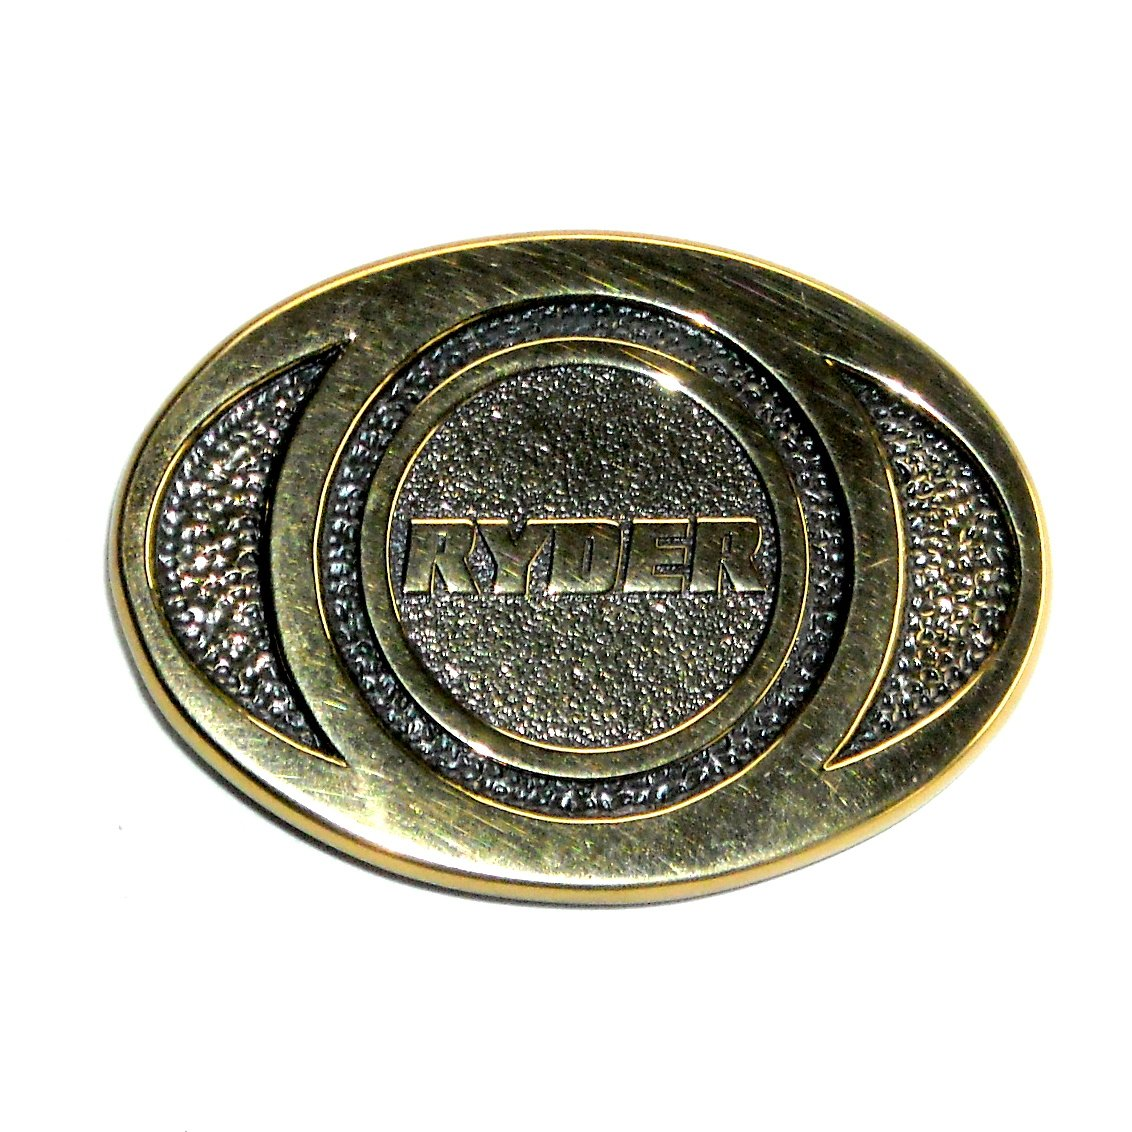 Ryder Solid Brass Vintage Belt Buckle